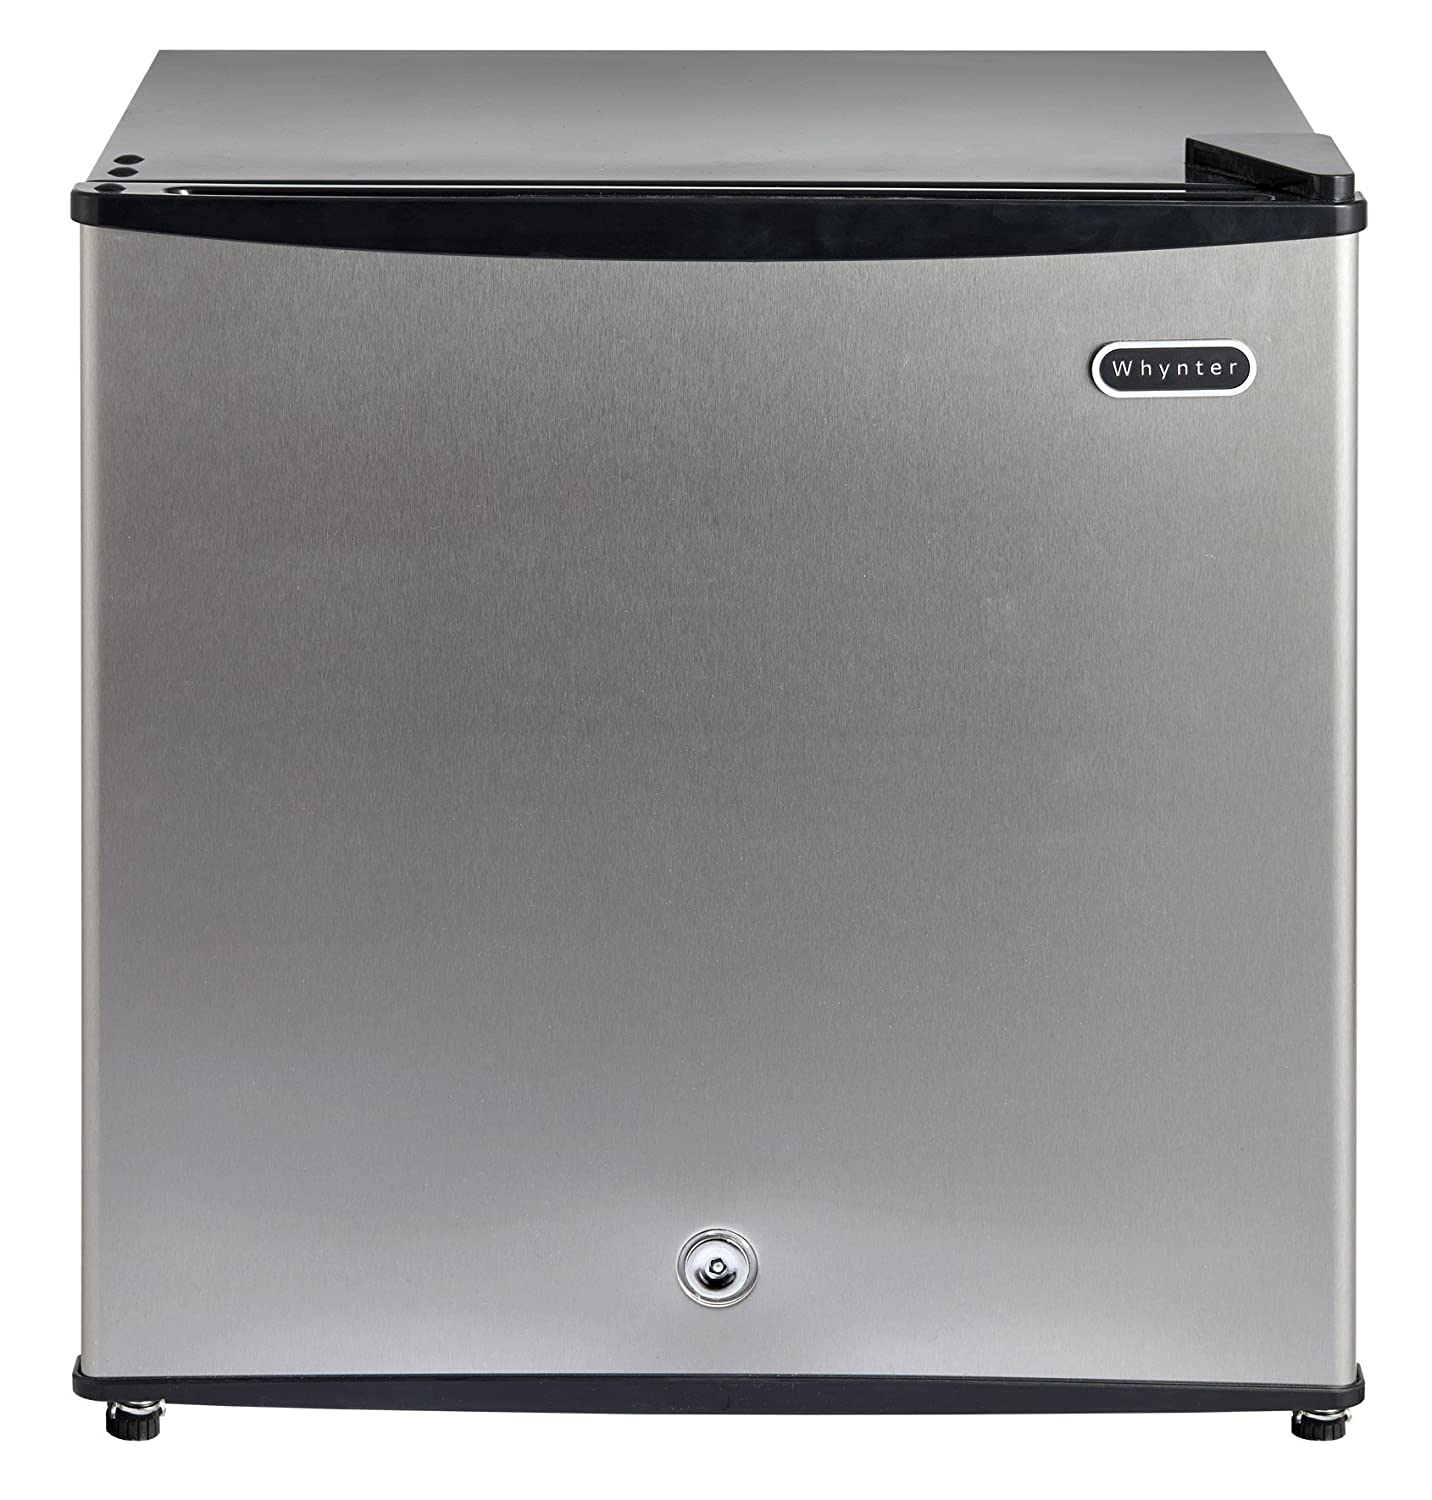 Whynter CUF-110B Energy Star 1.1 Cubic Feet Upright Freezer with Lock, Black Whynter Small Appliances